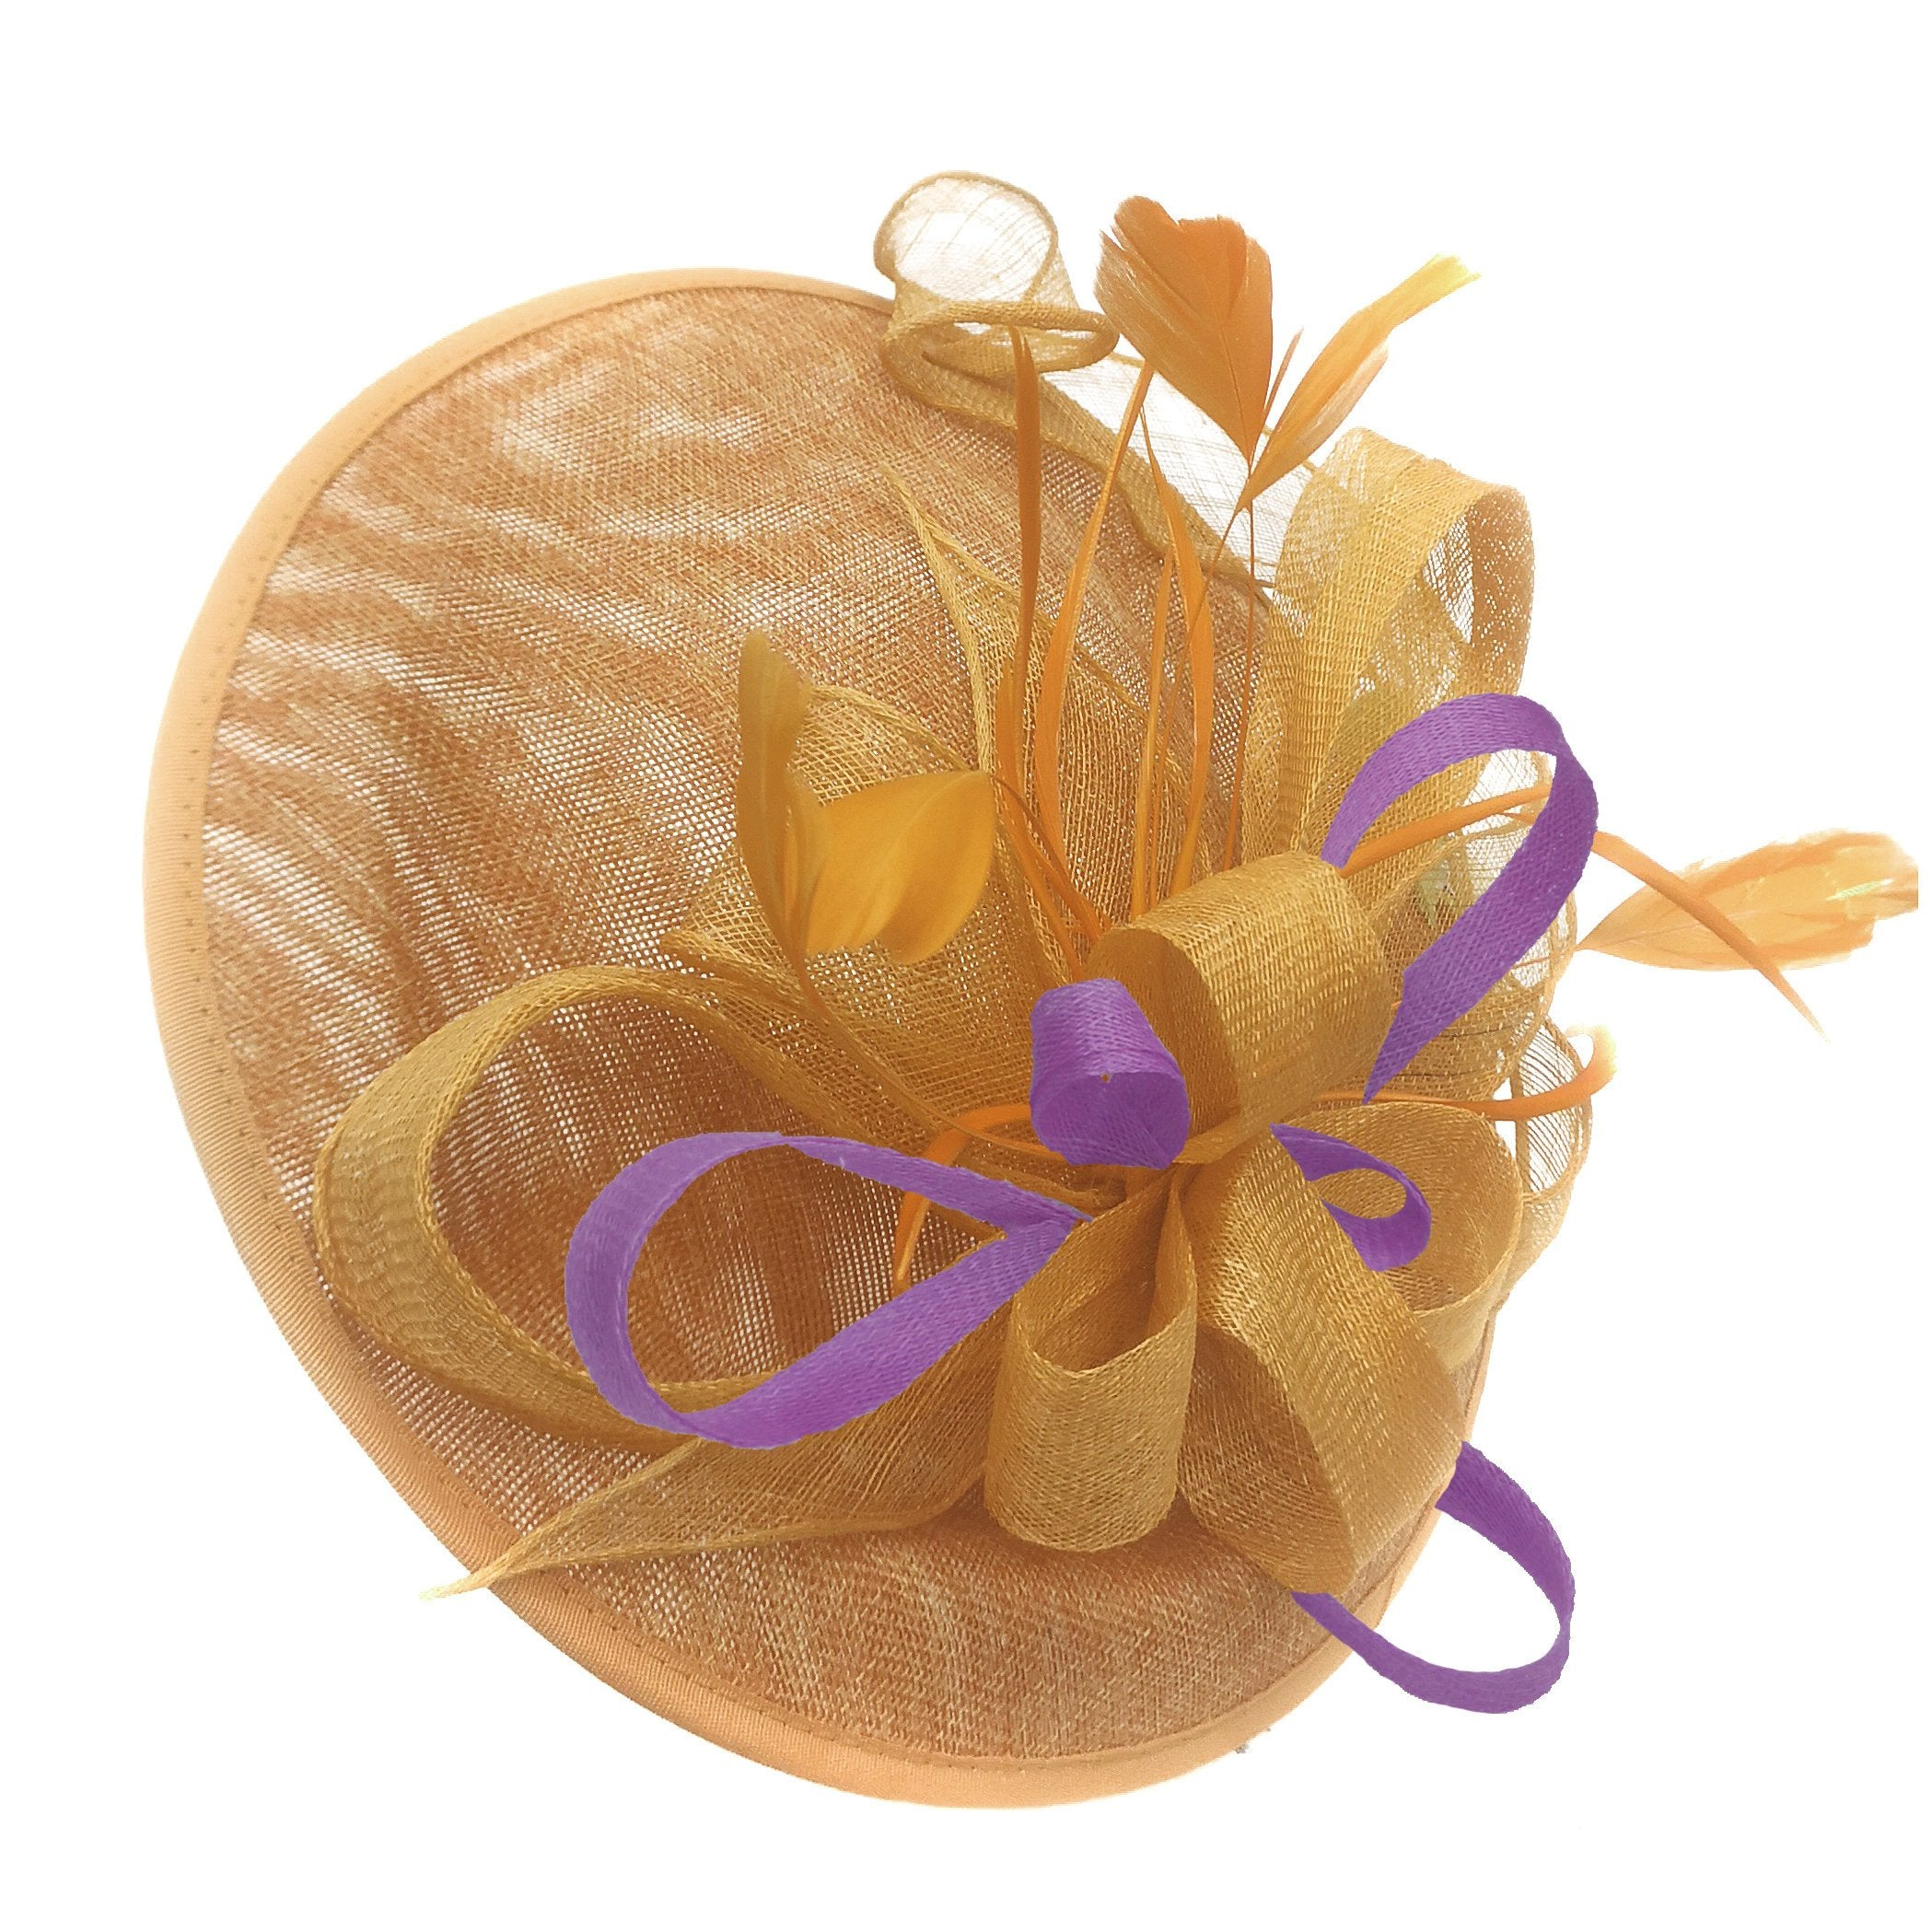 Caprilite Big Saucer Sinamay Gold Mustard & Cadbury Purple Mixed Colour Fascinator On Headband